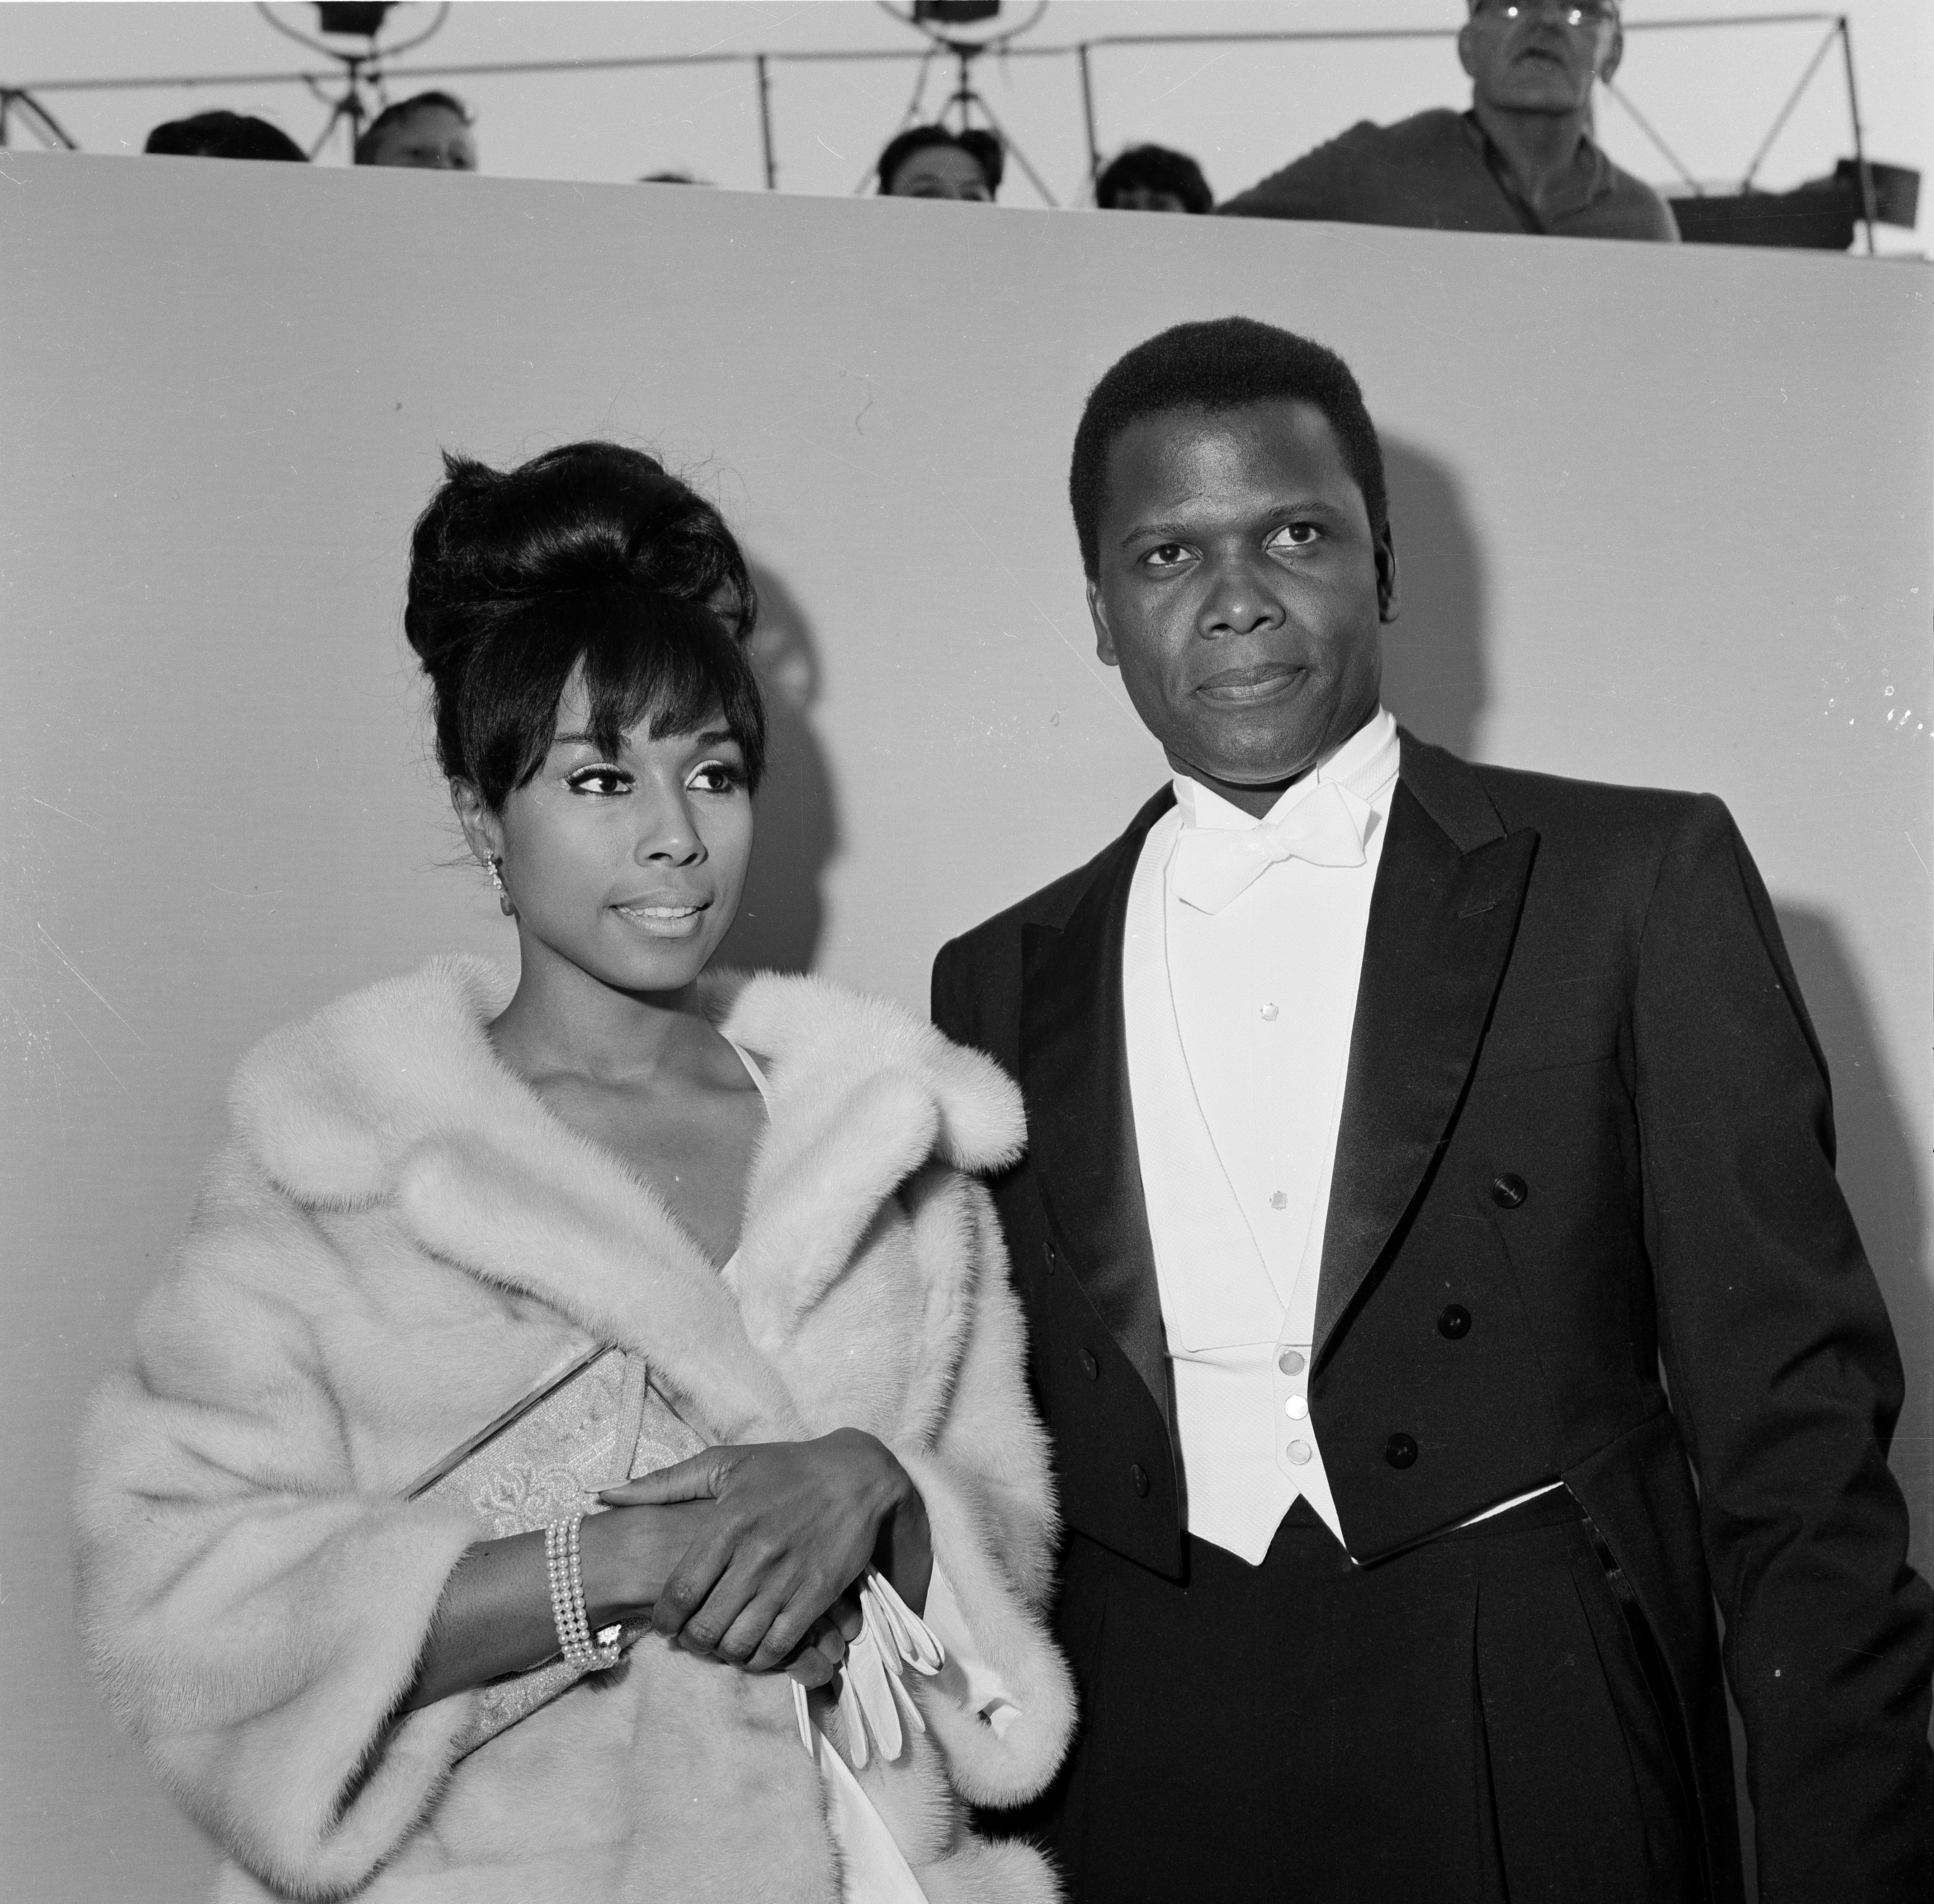 Sidney Poitier and Diahann Carroll at the 36th Academy Awards on April 13, 1964 in Santa Monica, California | Photo: Getty Images